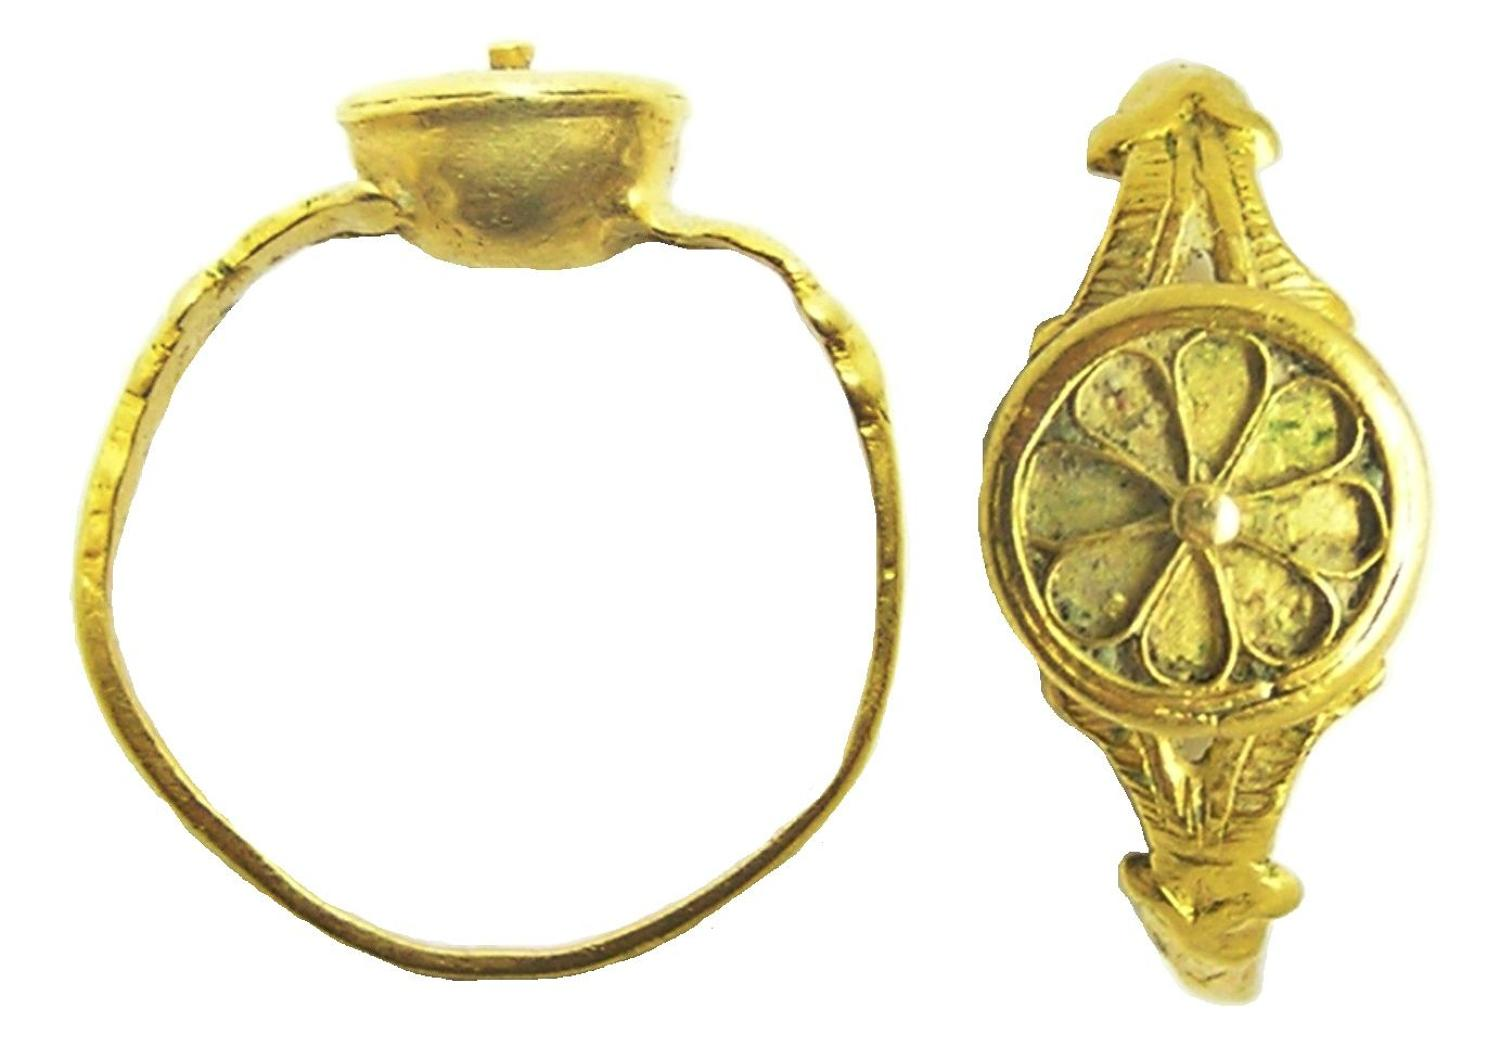 Renaissance gold rosette shaped finger ring